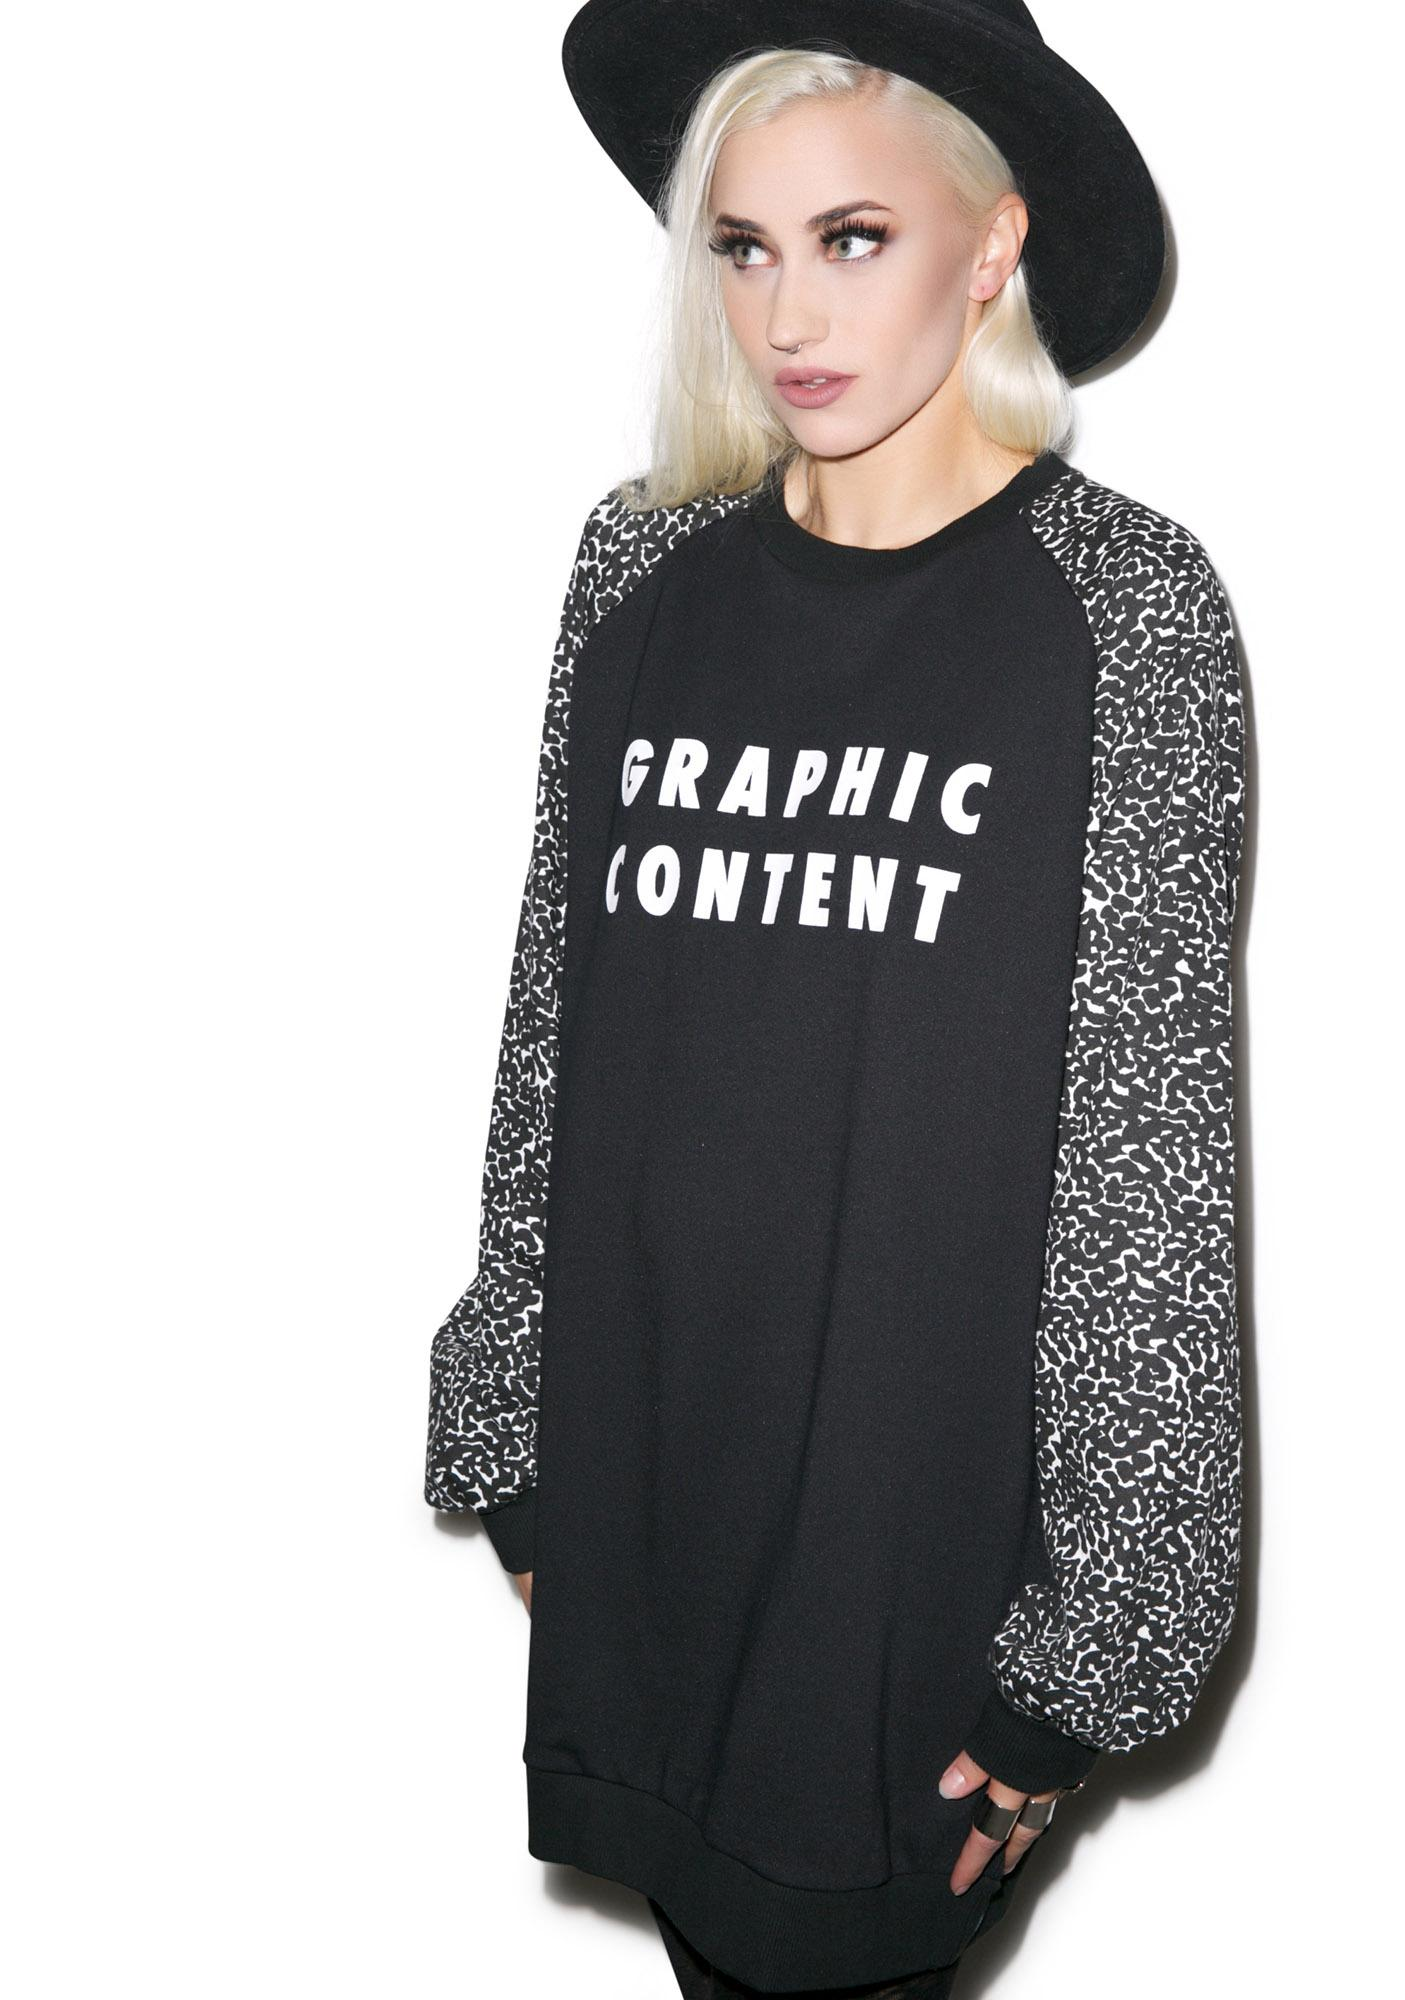 Lazy Oaf Graphic Content Sweatshirt